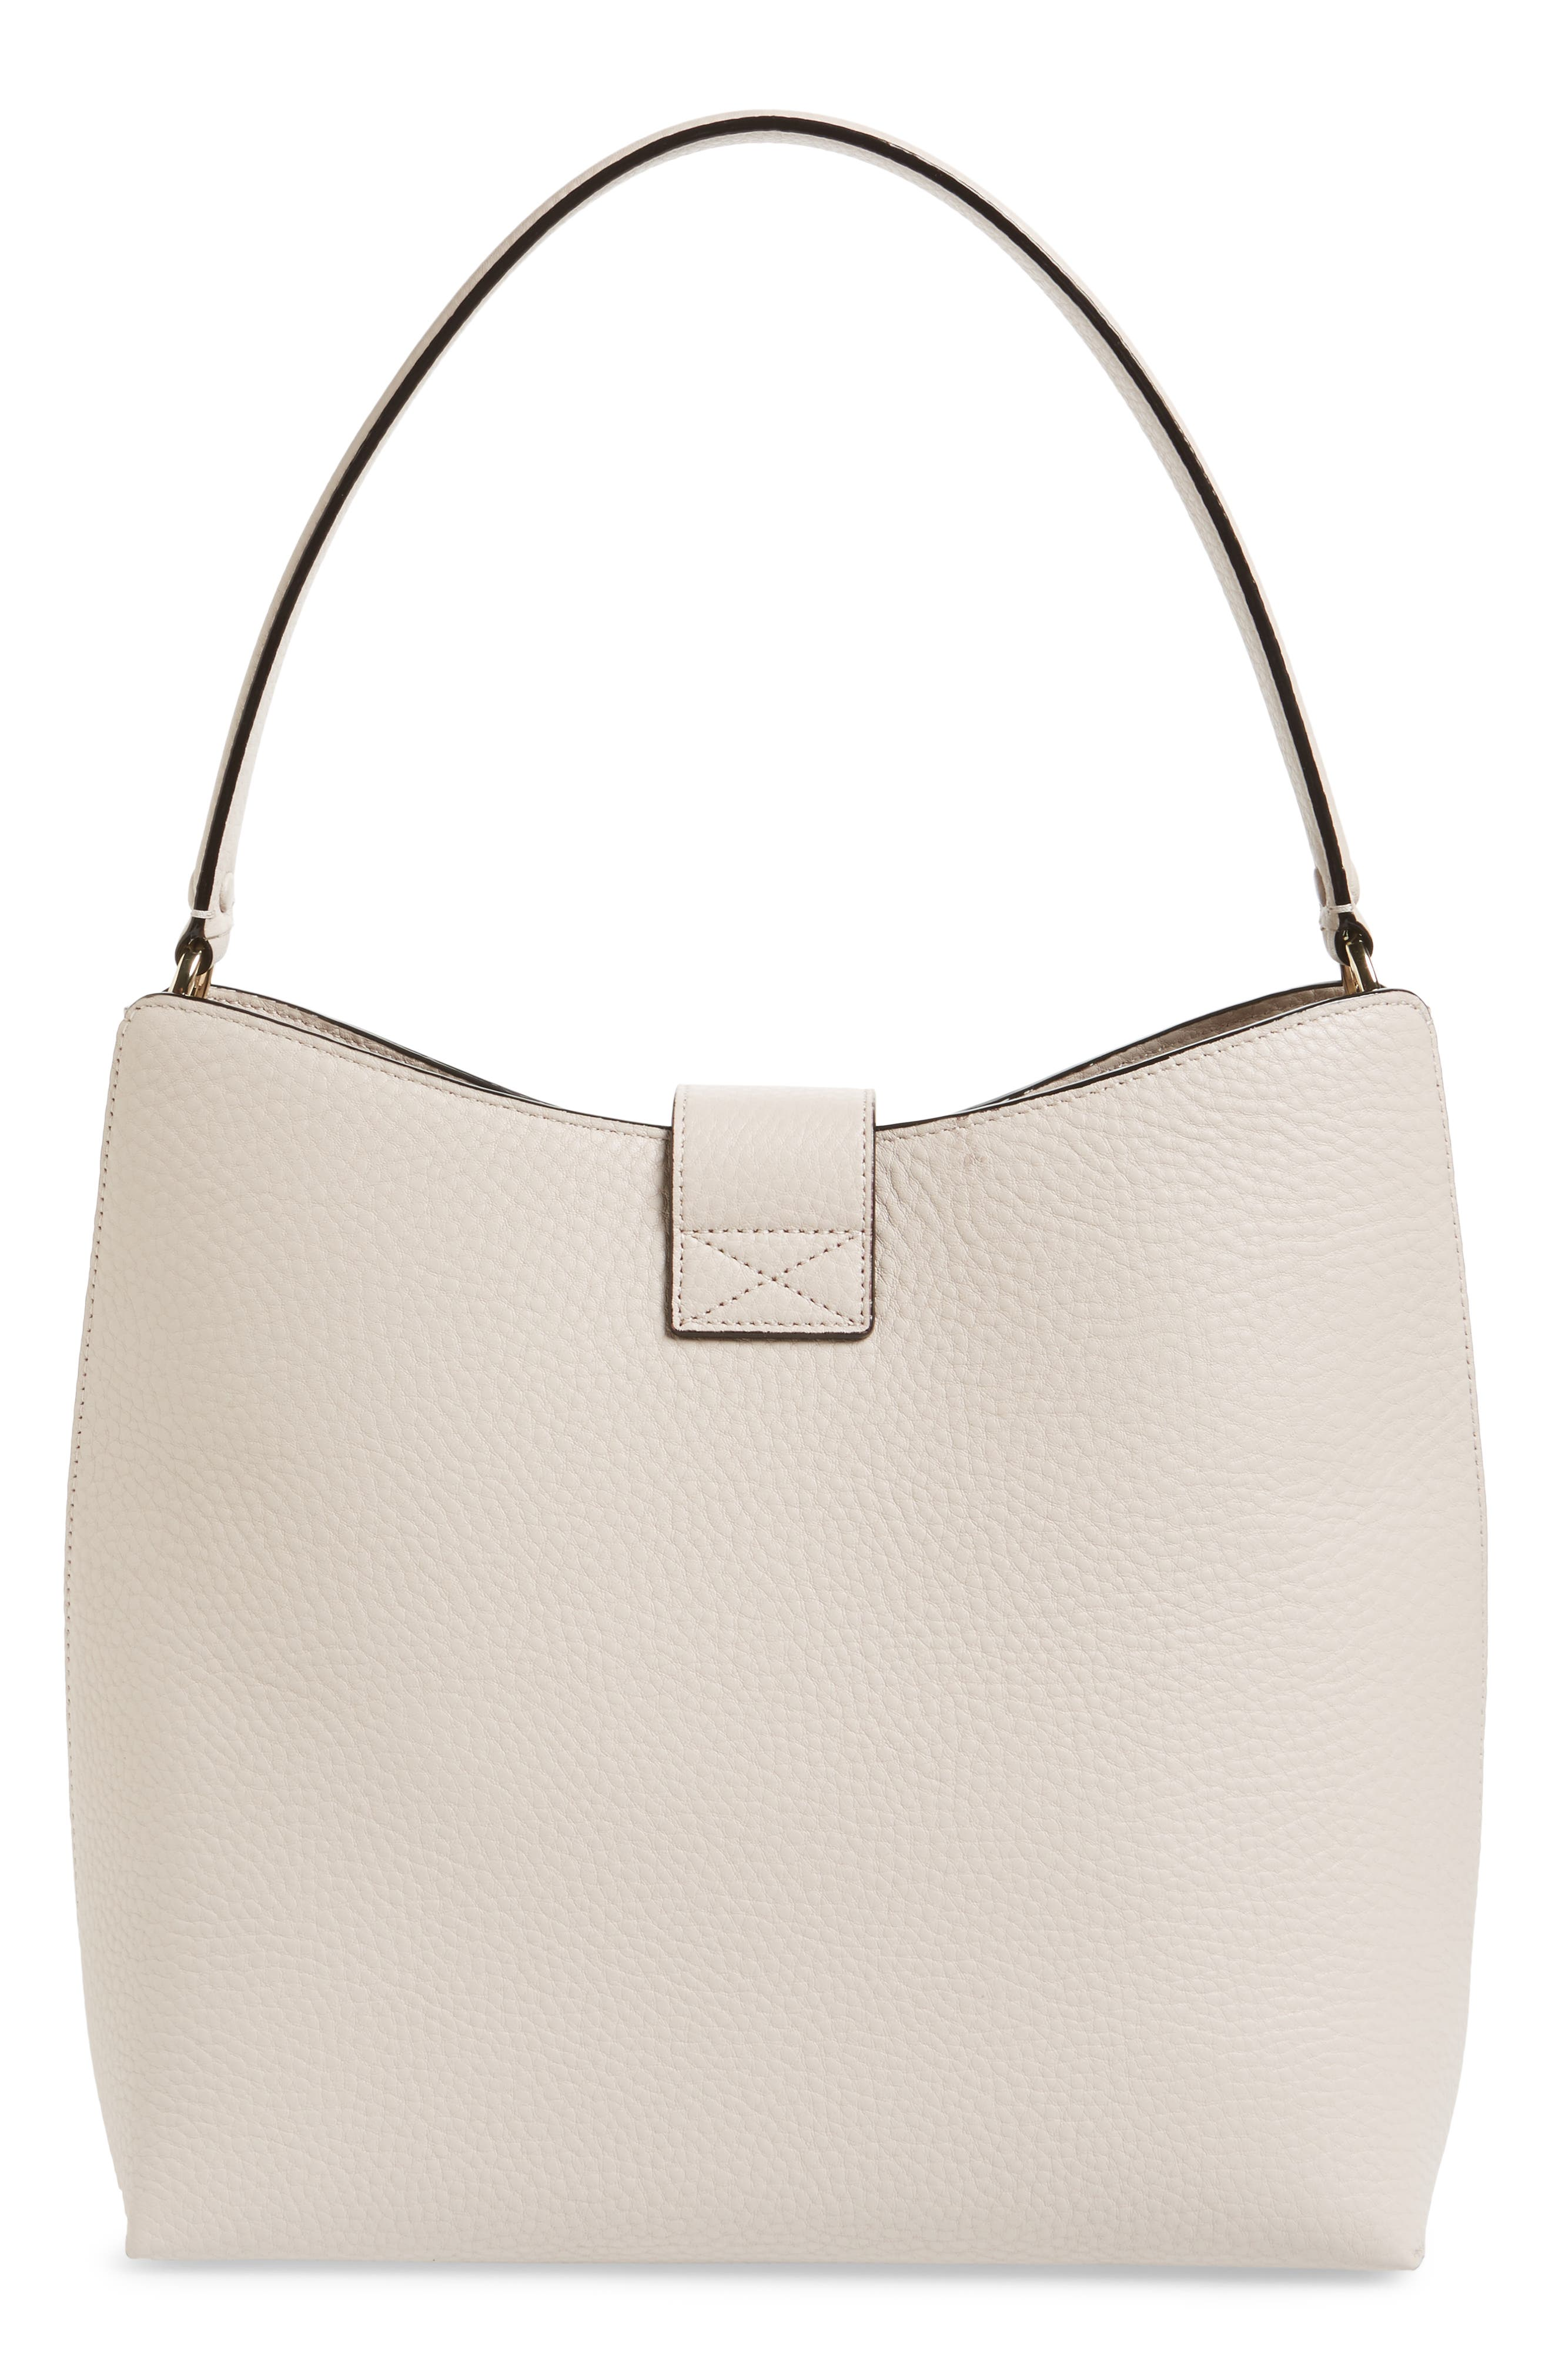 carlyle street – marea leather hobo,                             Alternate thumbnail 3, color,                             Warm Marshmallow